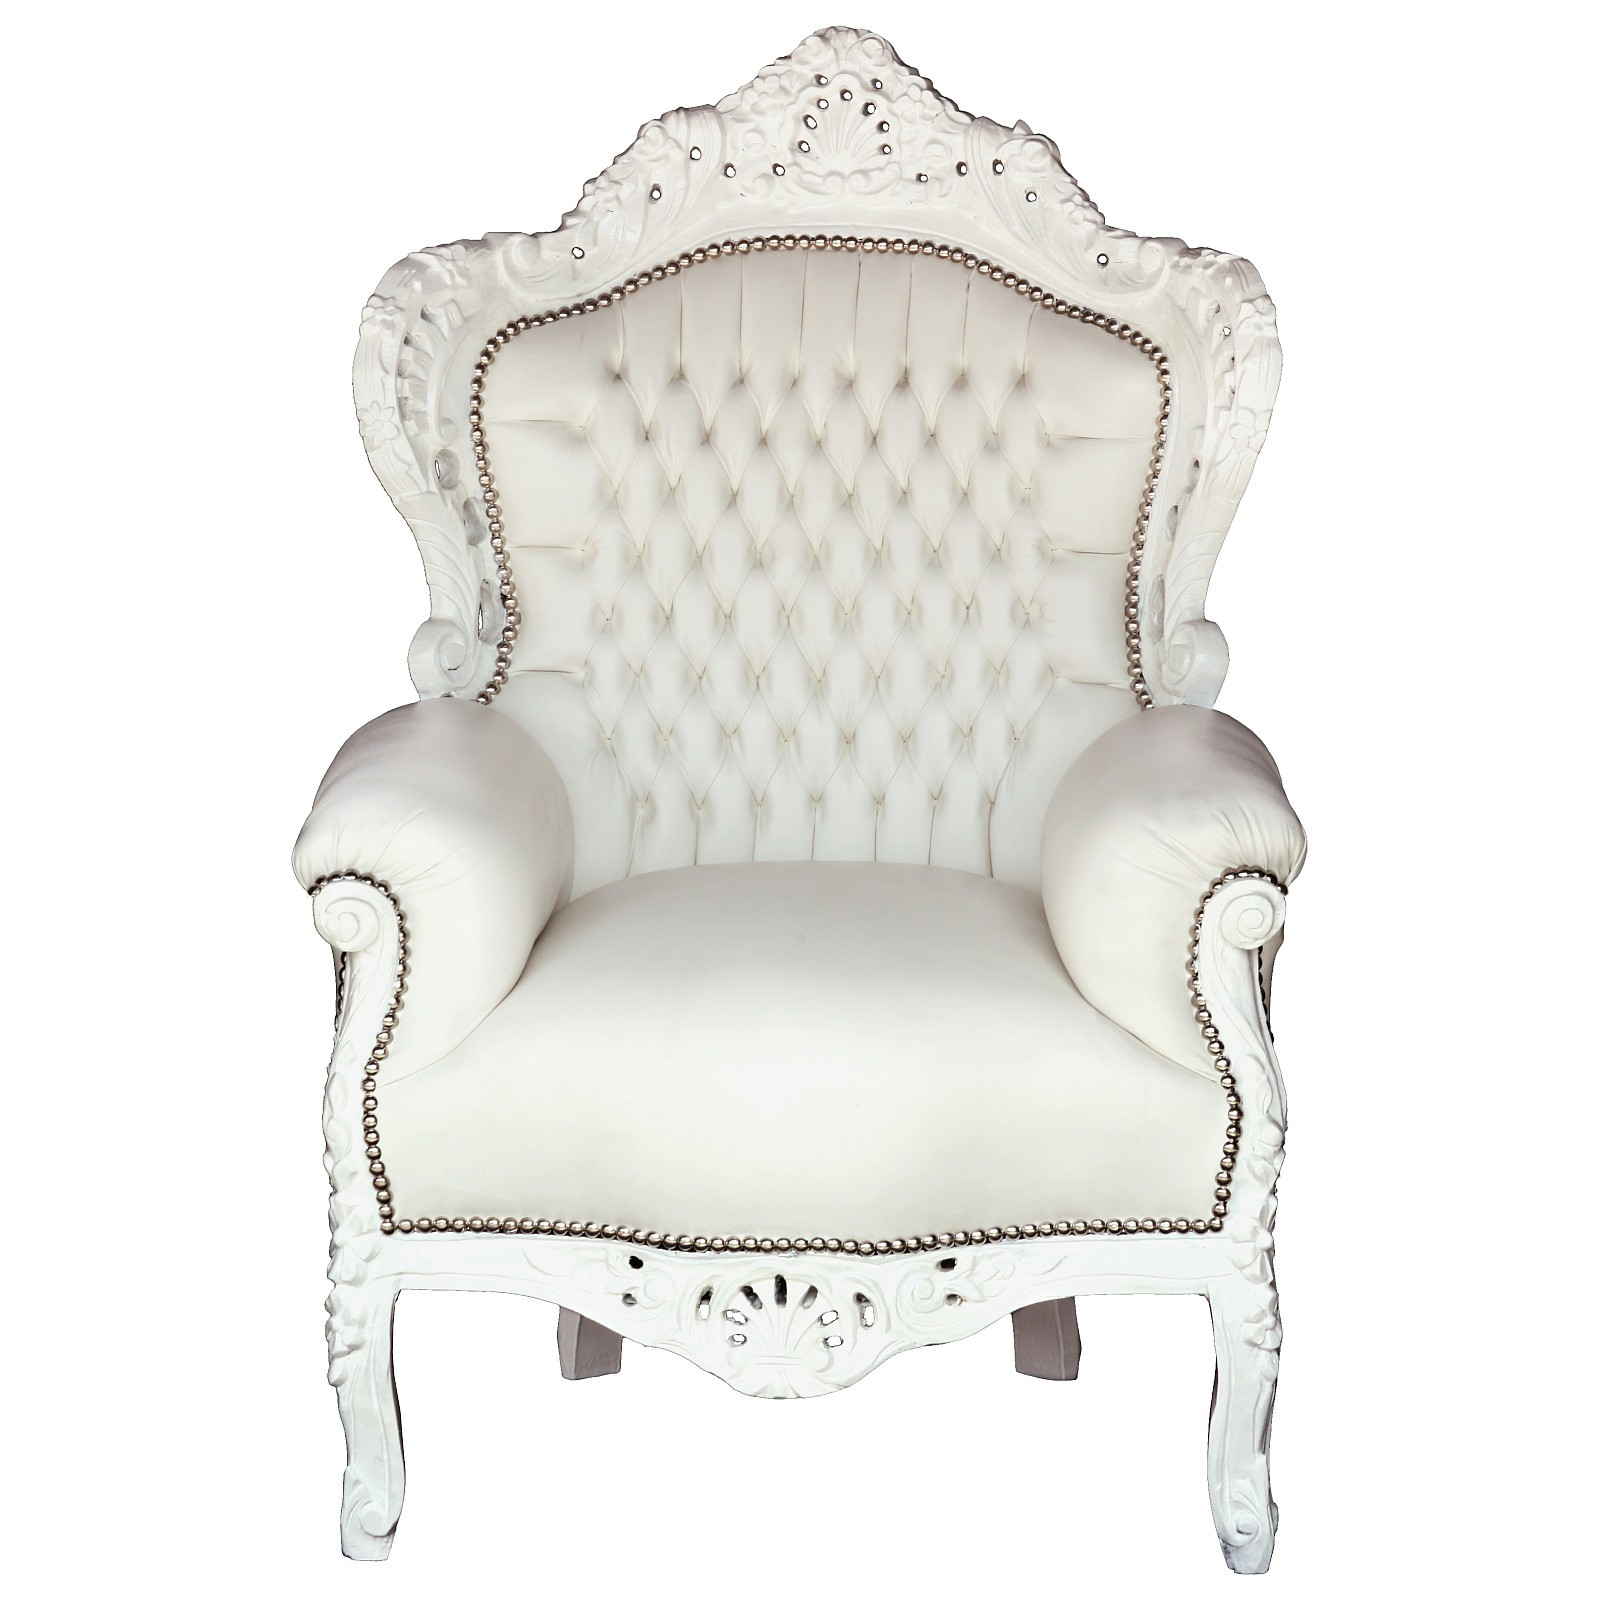 Beau Throne Style Chairs Wood White Synthetic Leather U2013 Bild 1